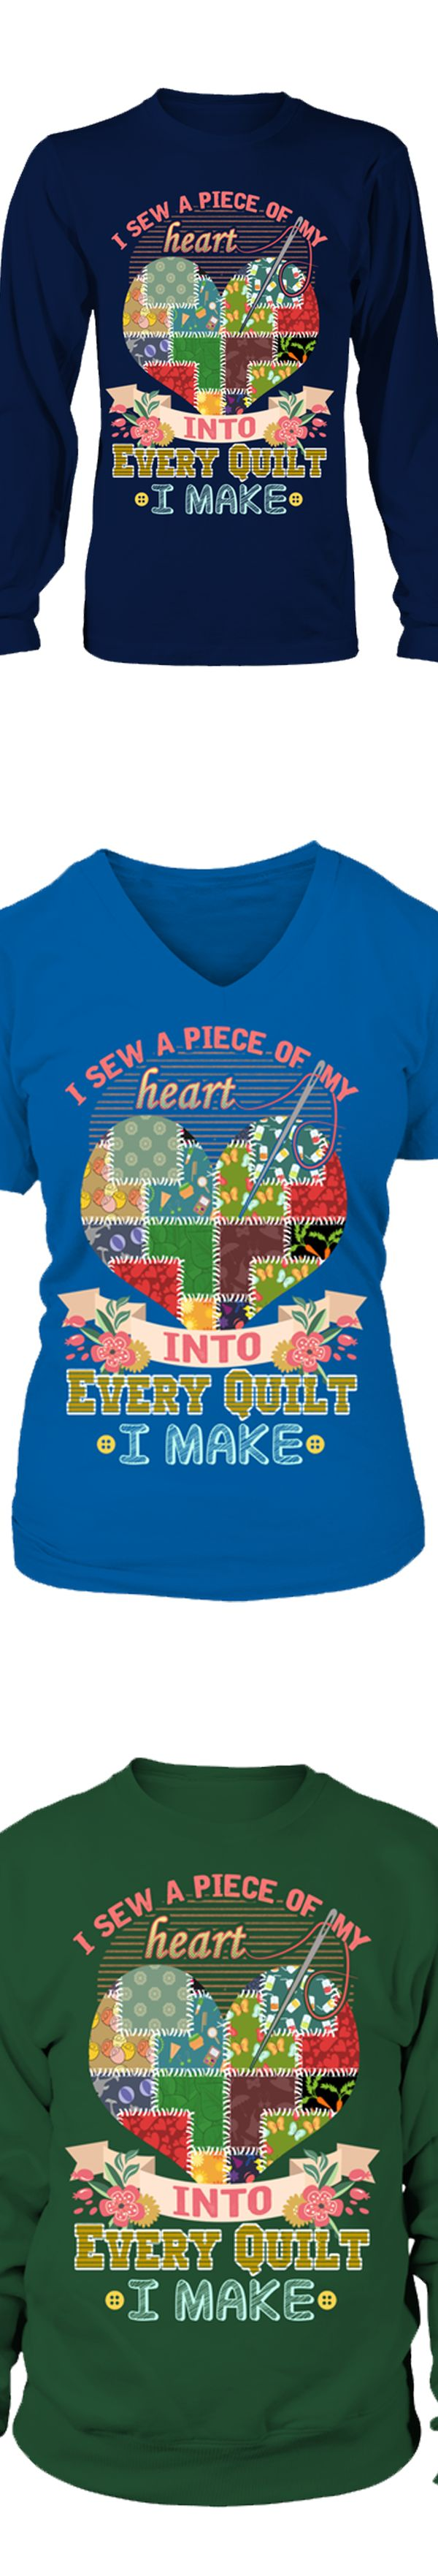 """I Sew A Piece Of My Heart Into Every Quilt I Make""...  Show your love of Quilting with this design printed in the USA.  Available in Gildan Cotton T-Shirt / V-Neck / Long-Sleeve / Sweatshirt.   US/Canada orders are delivered in 10-14 days."